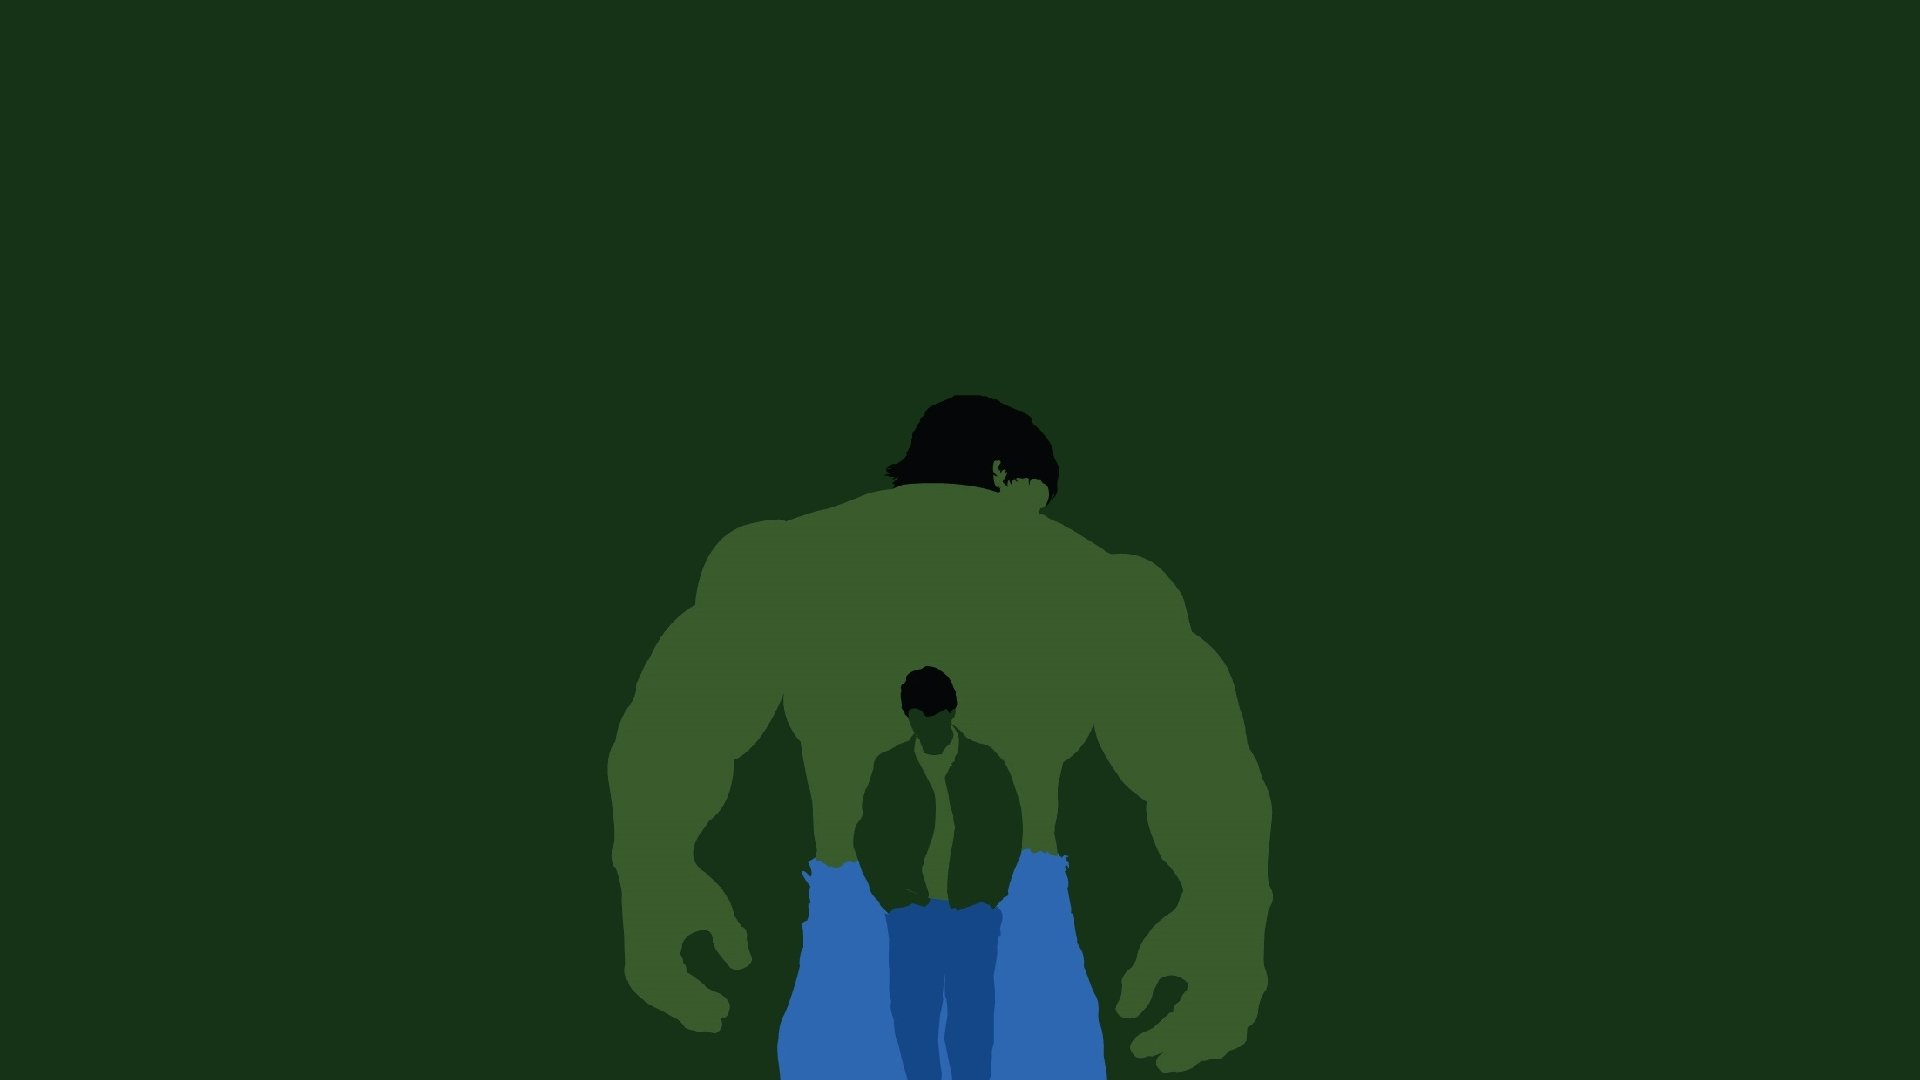 Awesome Hulk wallpaper ID451481 for full hd PC 1920x1080